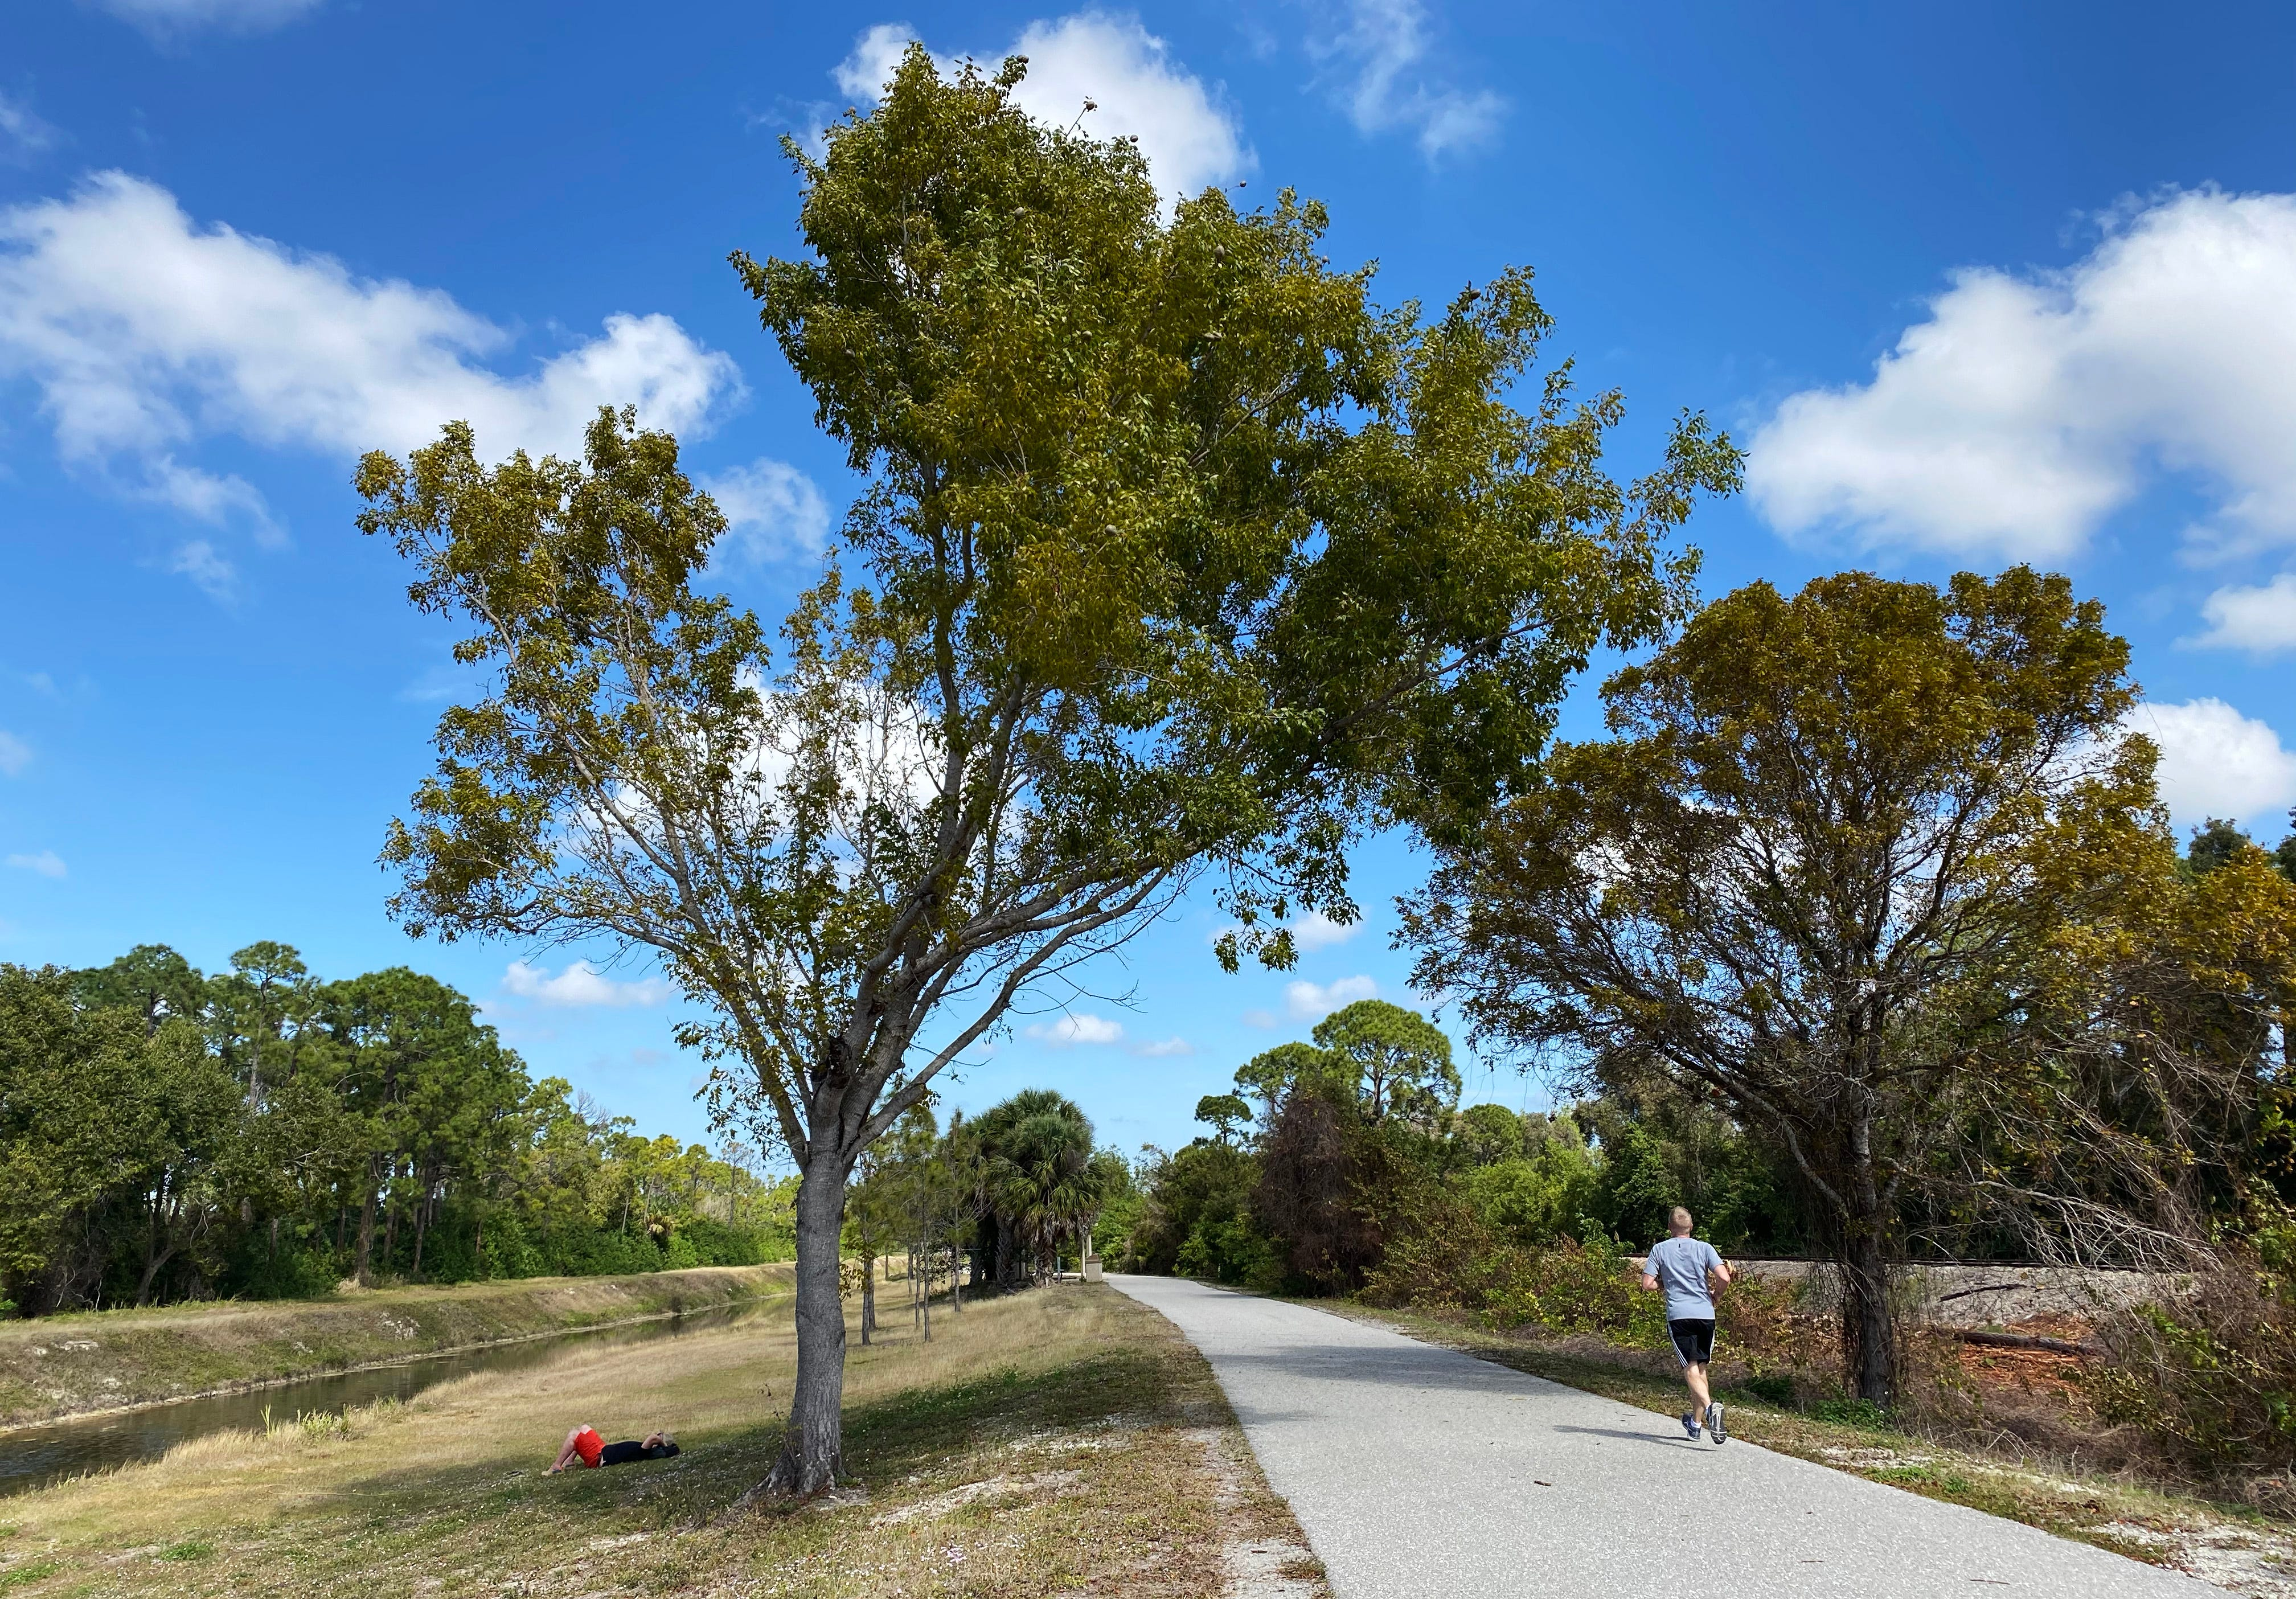 In the Know: John Yarbrough Linear Park to get trailhead in near future, expansion later 3